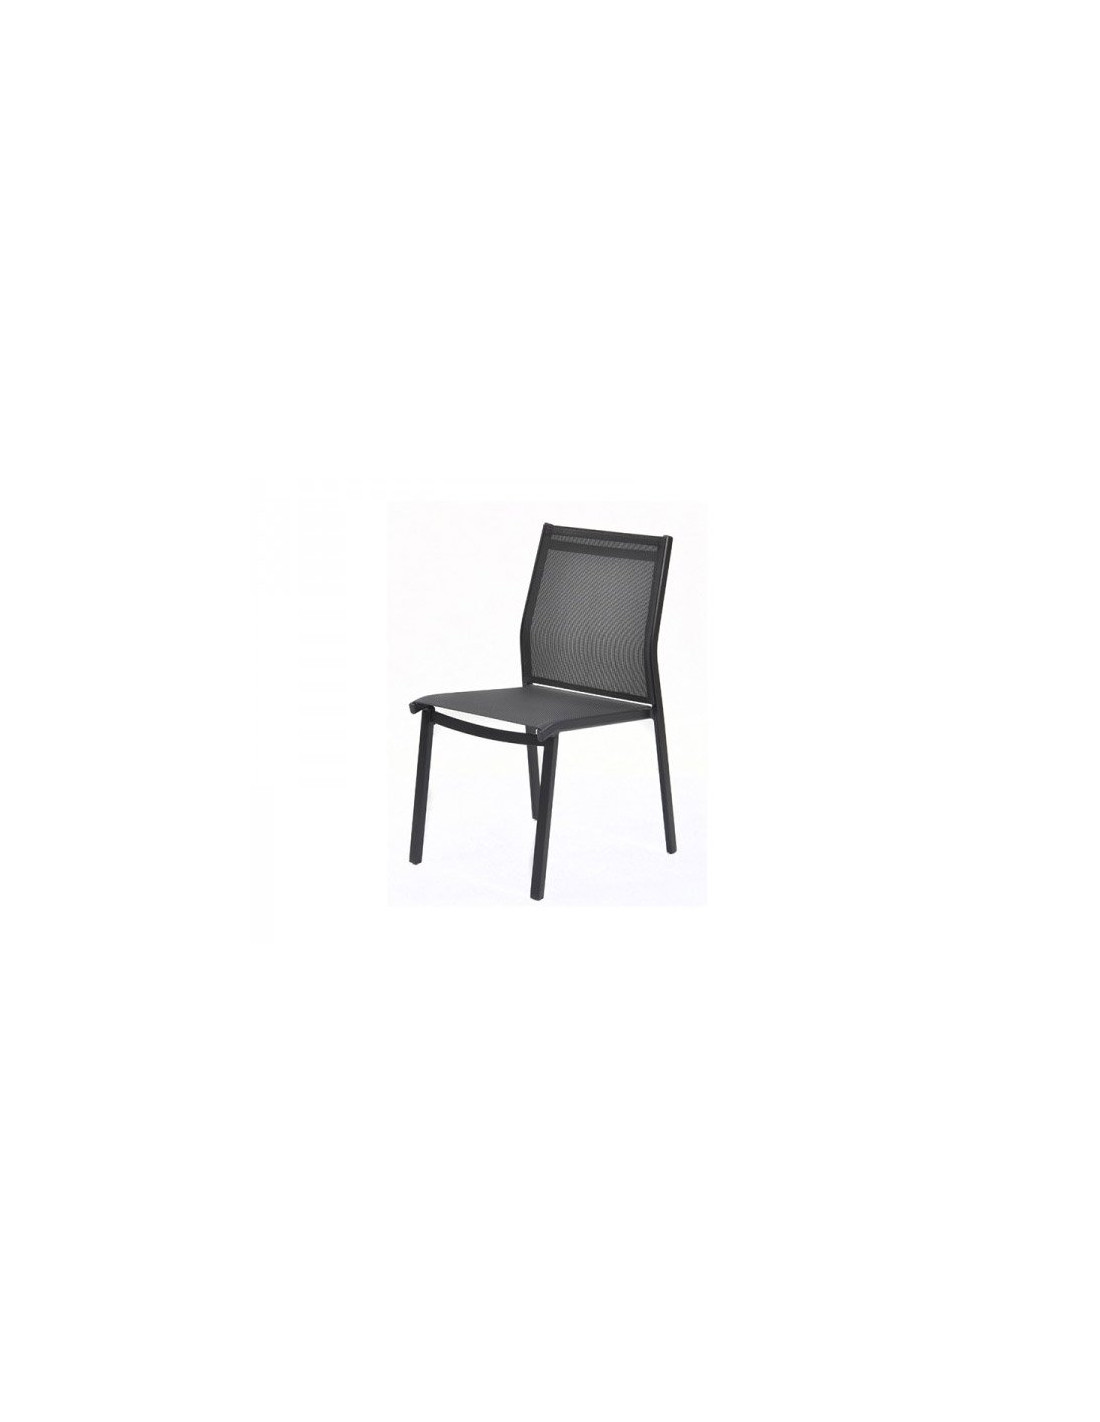 Ensemble table et chaise de jardin balcon de kettler - Ensemble chaise et table de jardin ...